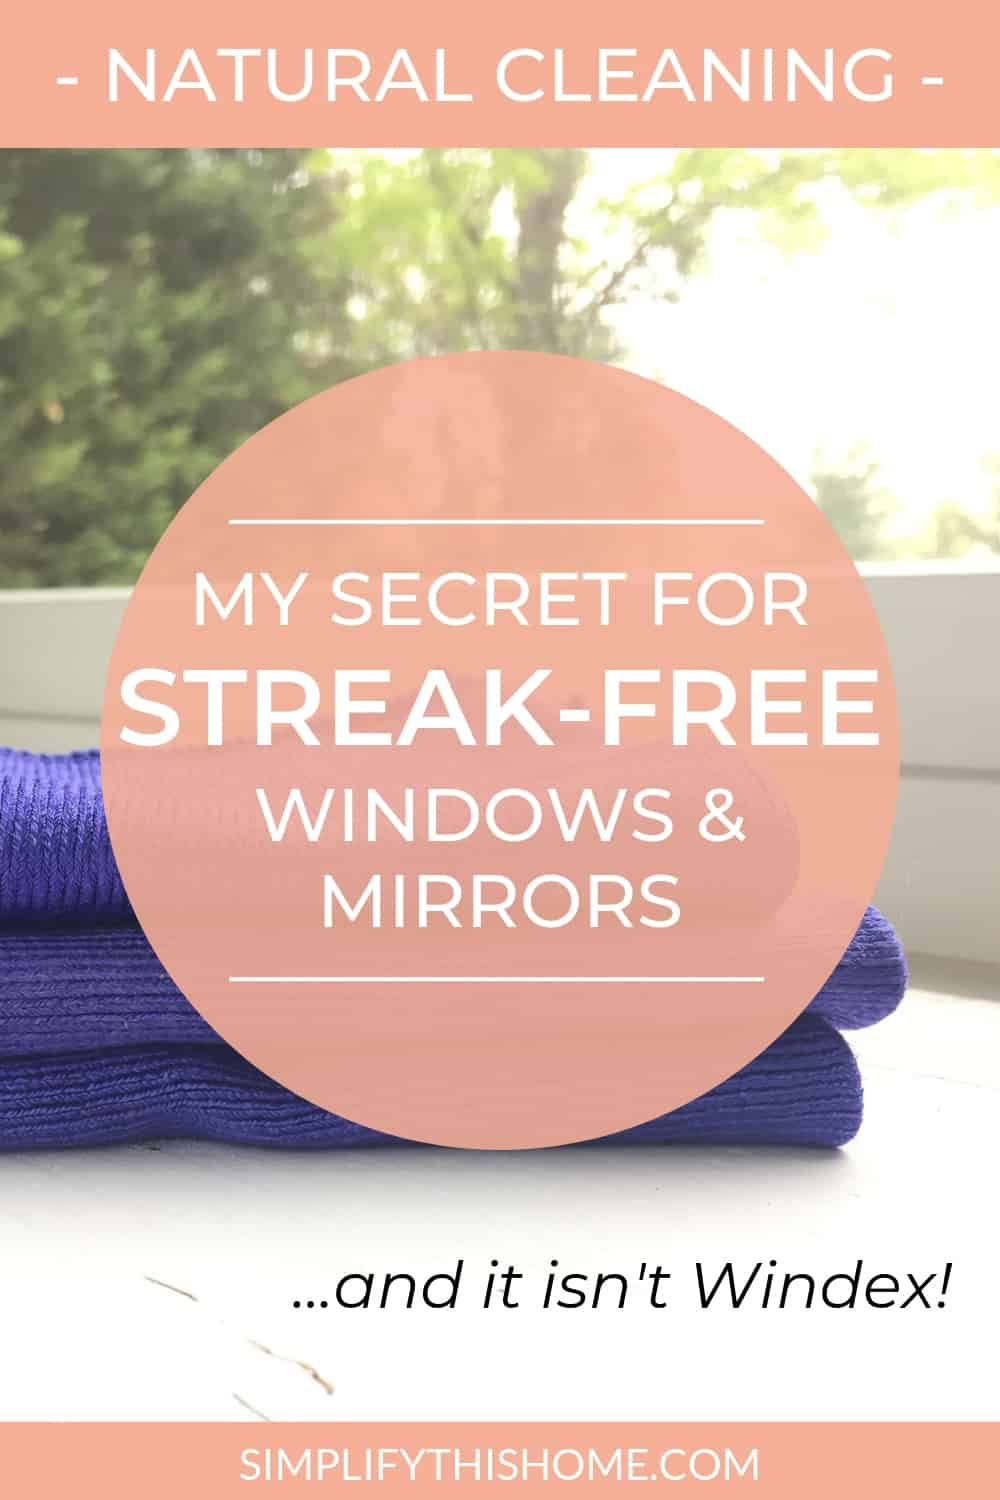 My secret for streak-free windows and mirrors